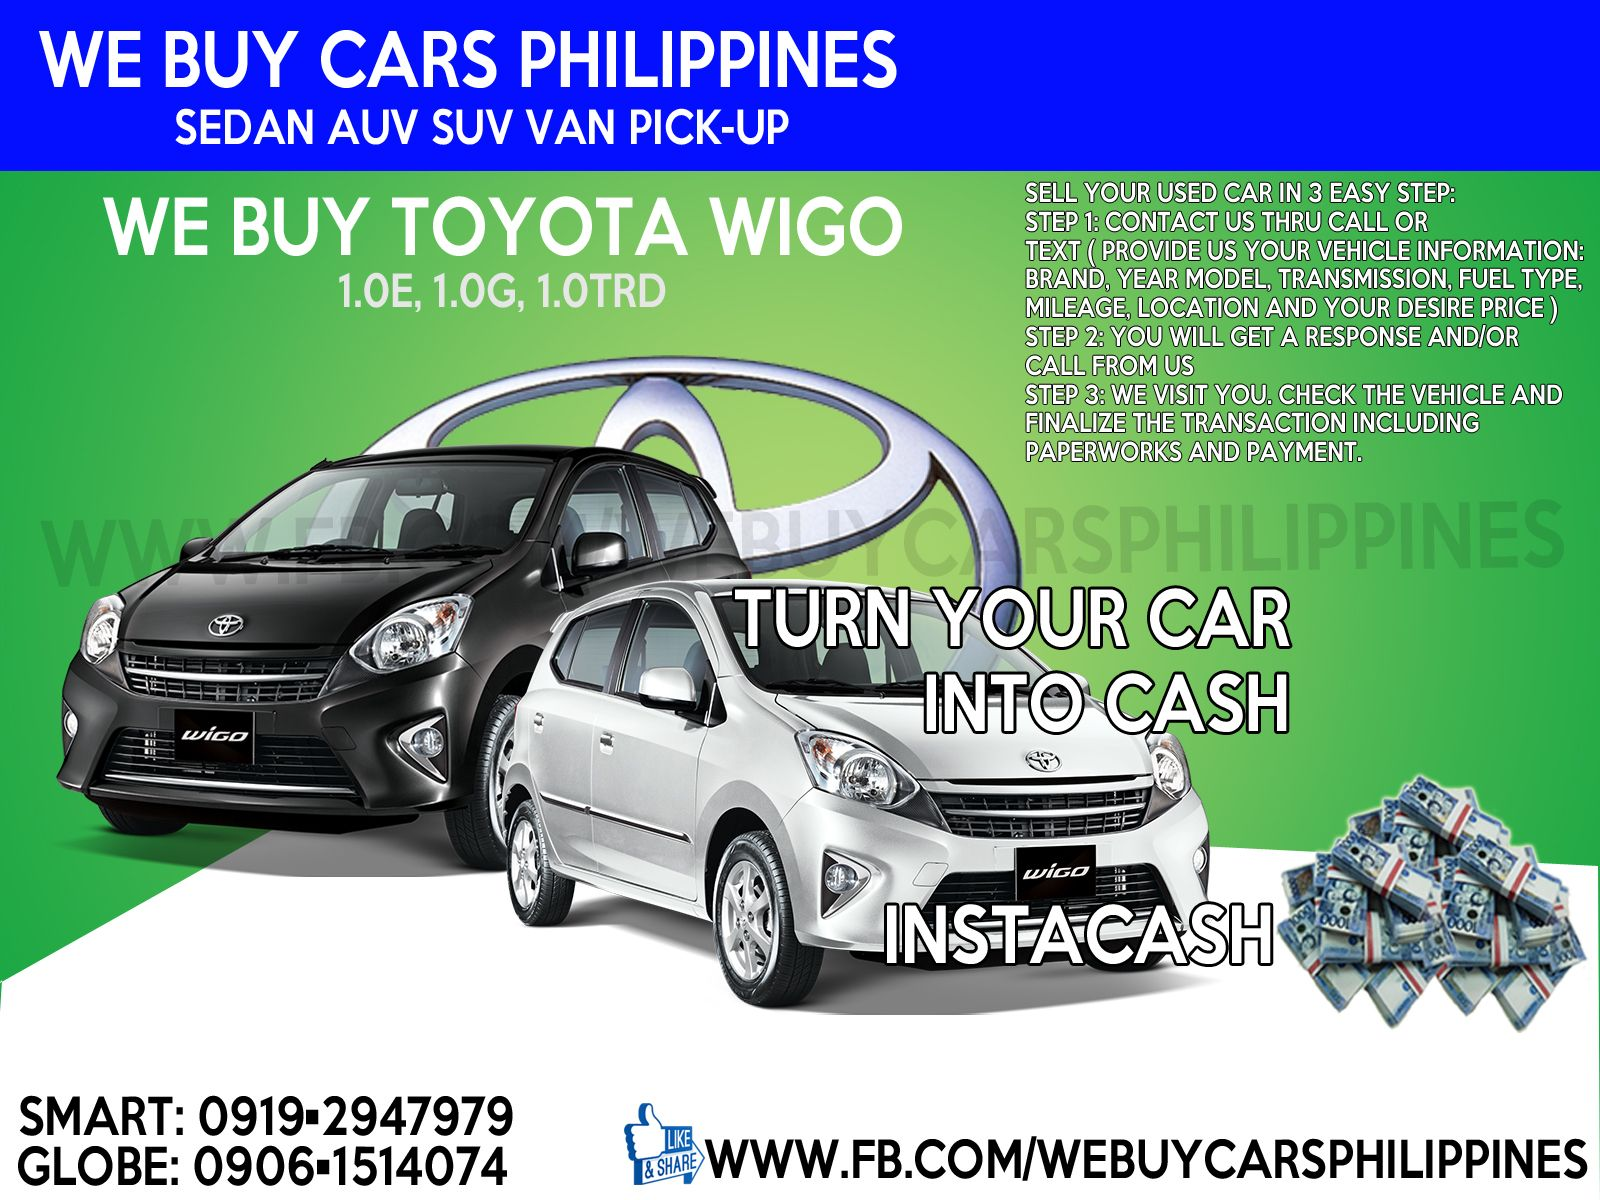 We buy used toyota wigo philippines contact numbers smart 0919 294 7979